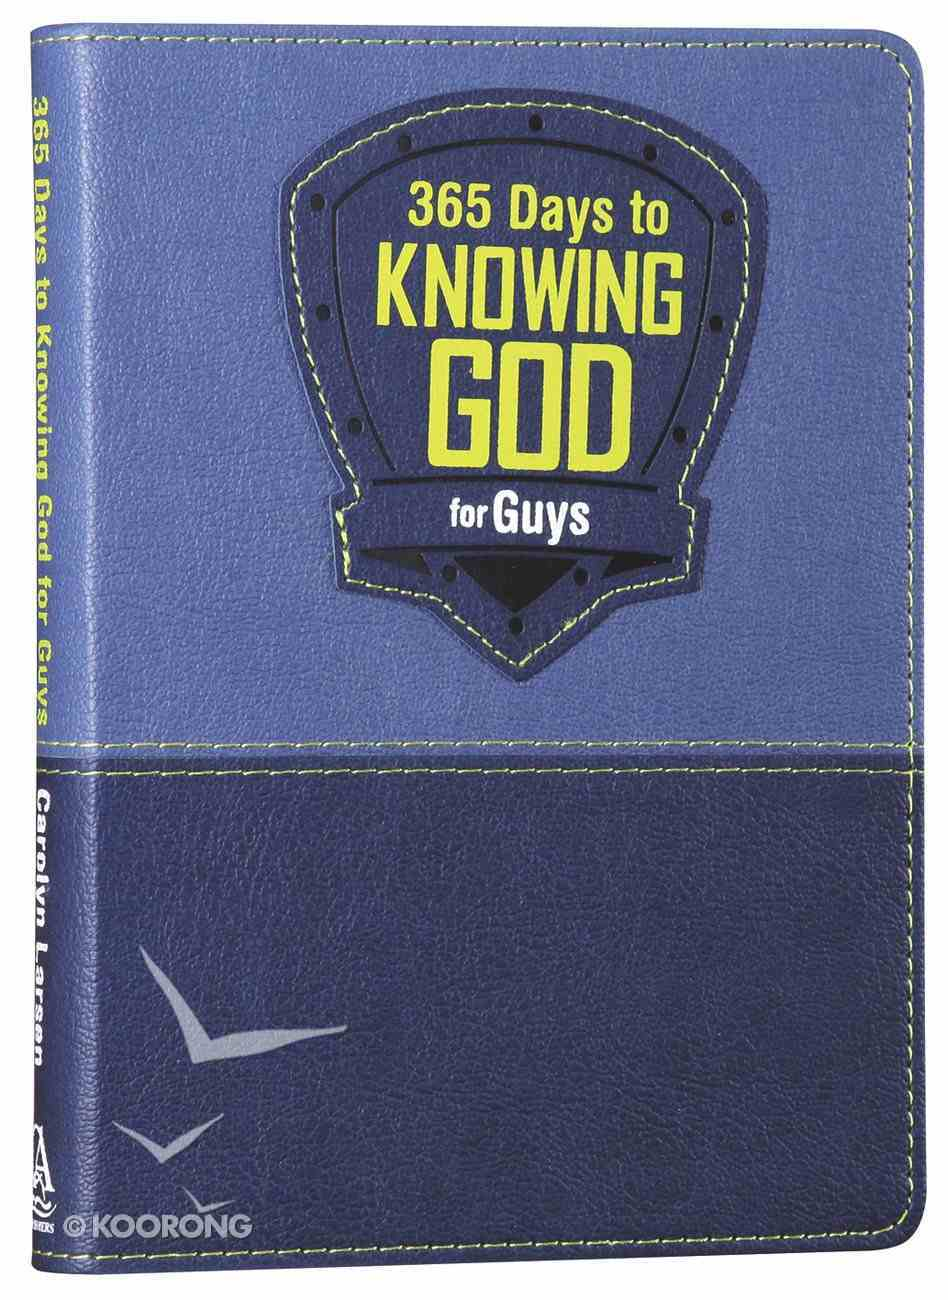 365 Days to Knowing God For Guys (Blue) Imitation Leather